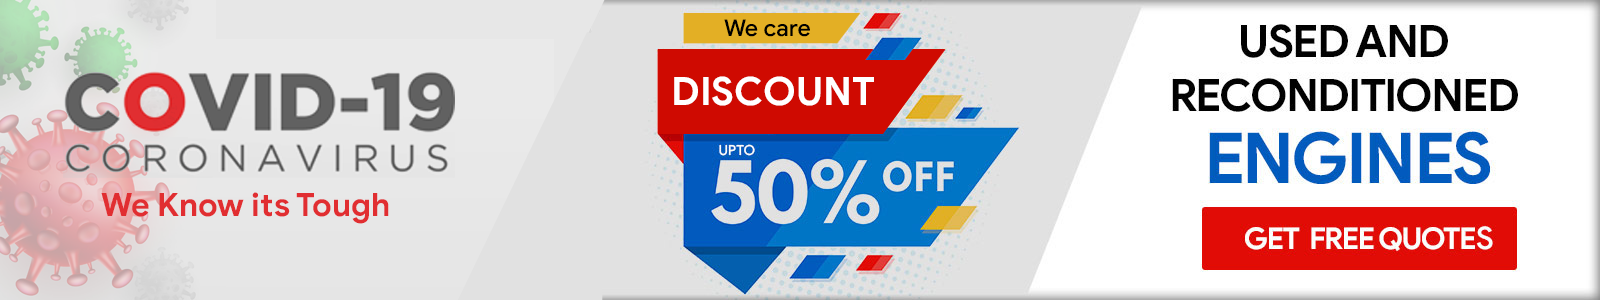 COVID-19 Offers uptp 50% on used & reconditioned engines